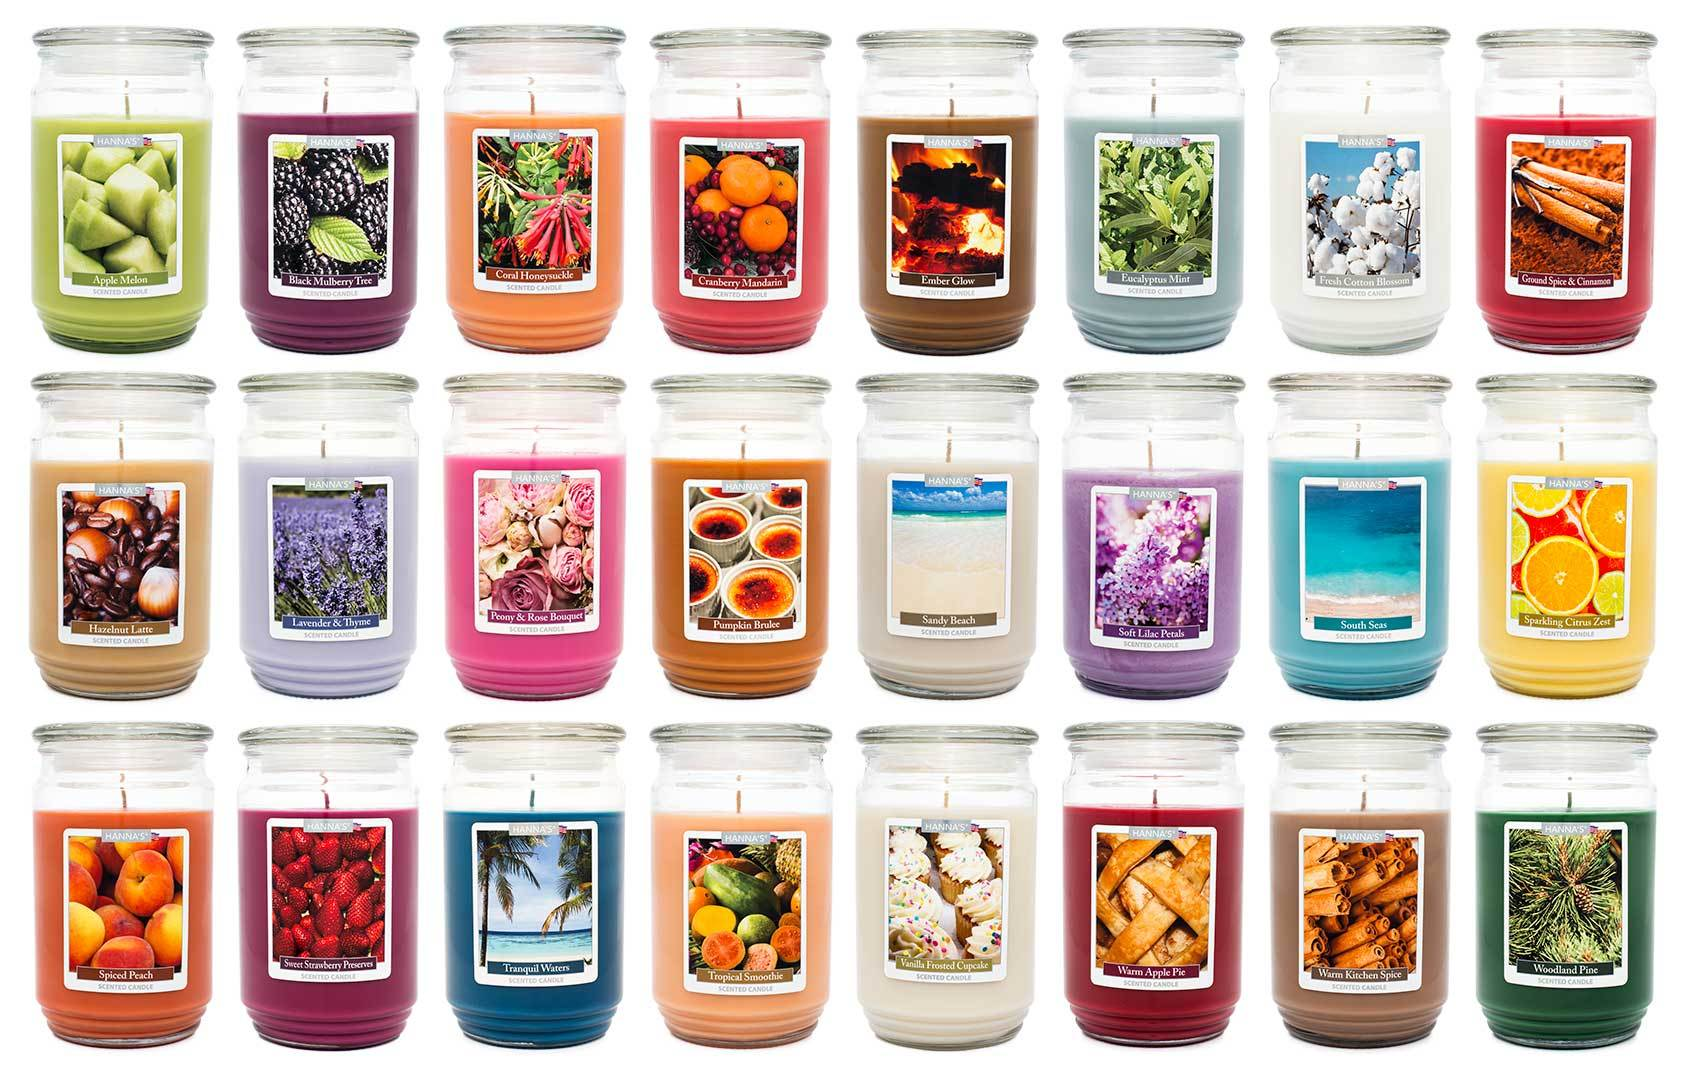 Peony Rose Bouquet Scented Large Candle Candles Candlemart.com $ 12.99